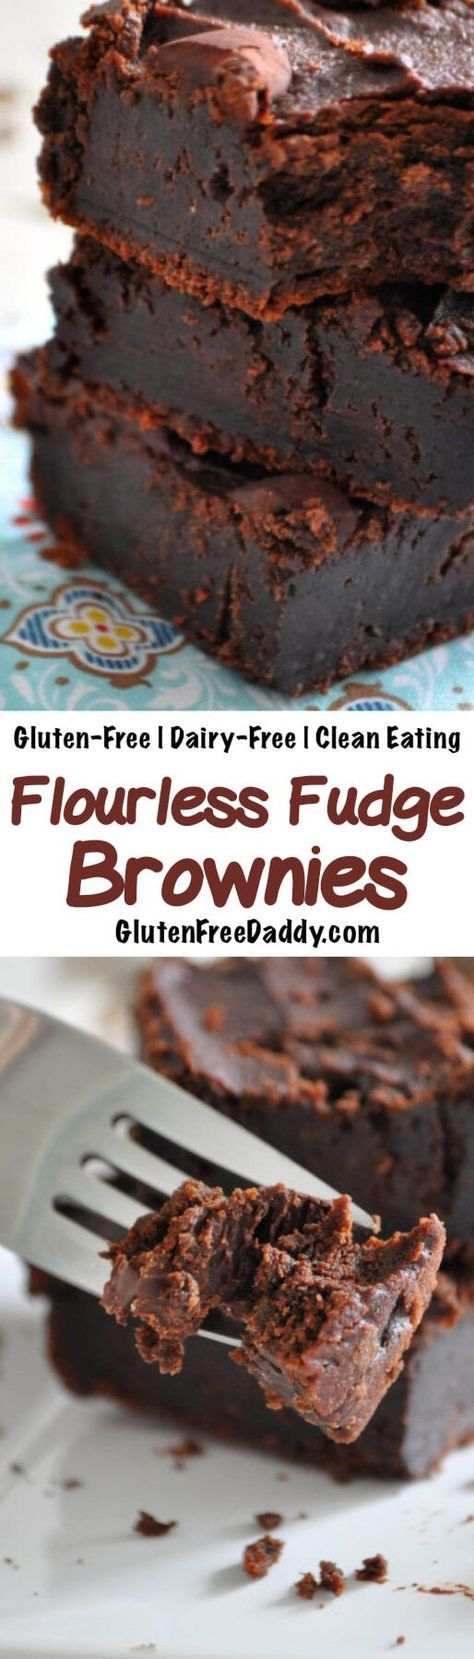 These gluten-free flourless brownies are a rich, dense, and decadent chocolate treat. But I love that they are made from chickpeas and cashews, so they are full of fiber, healthy fats and protein!